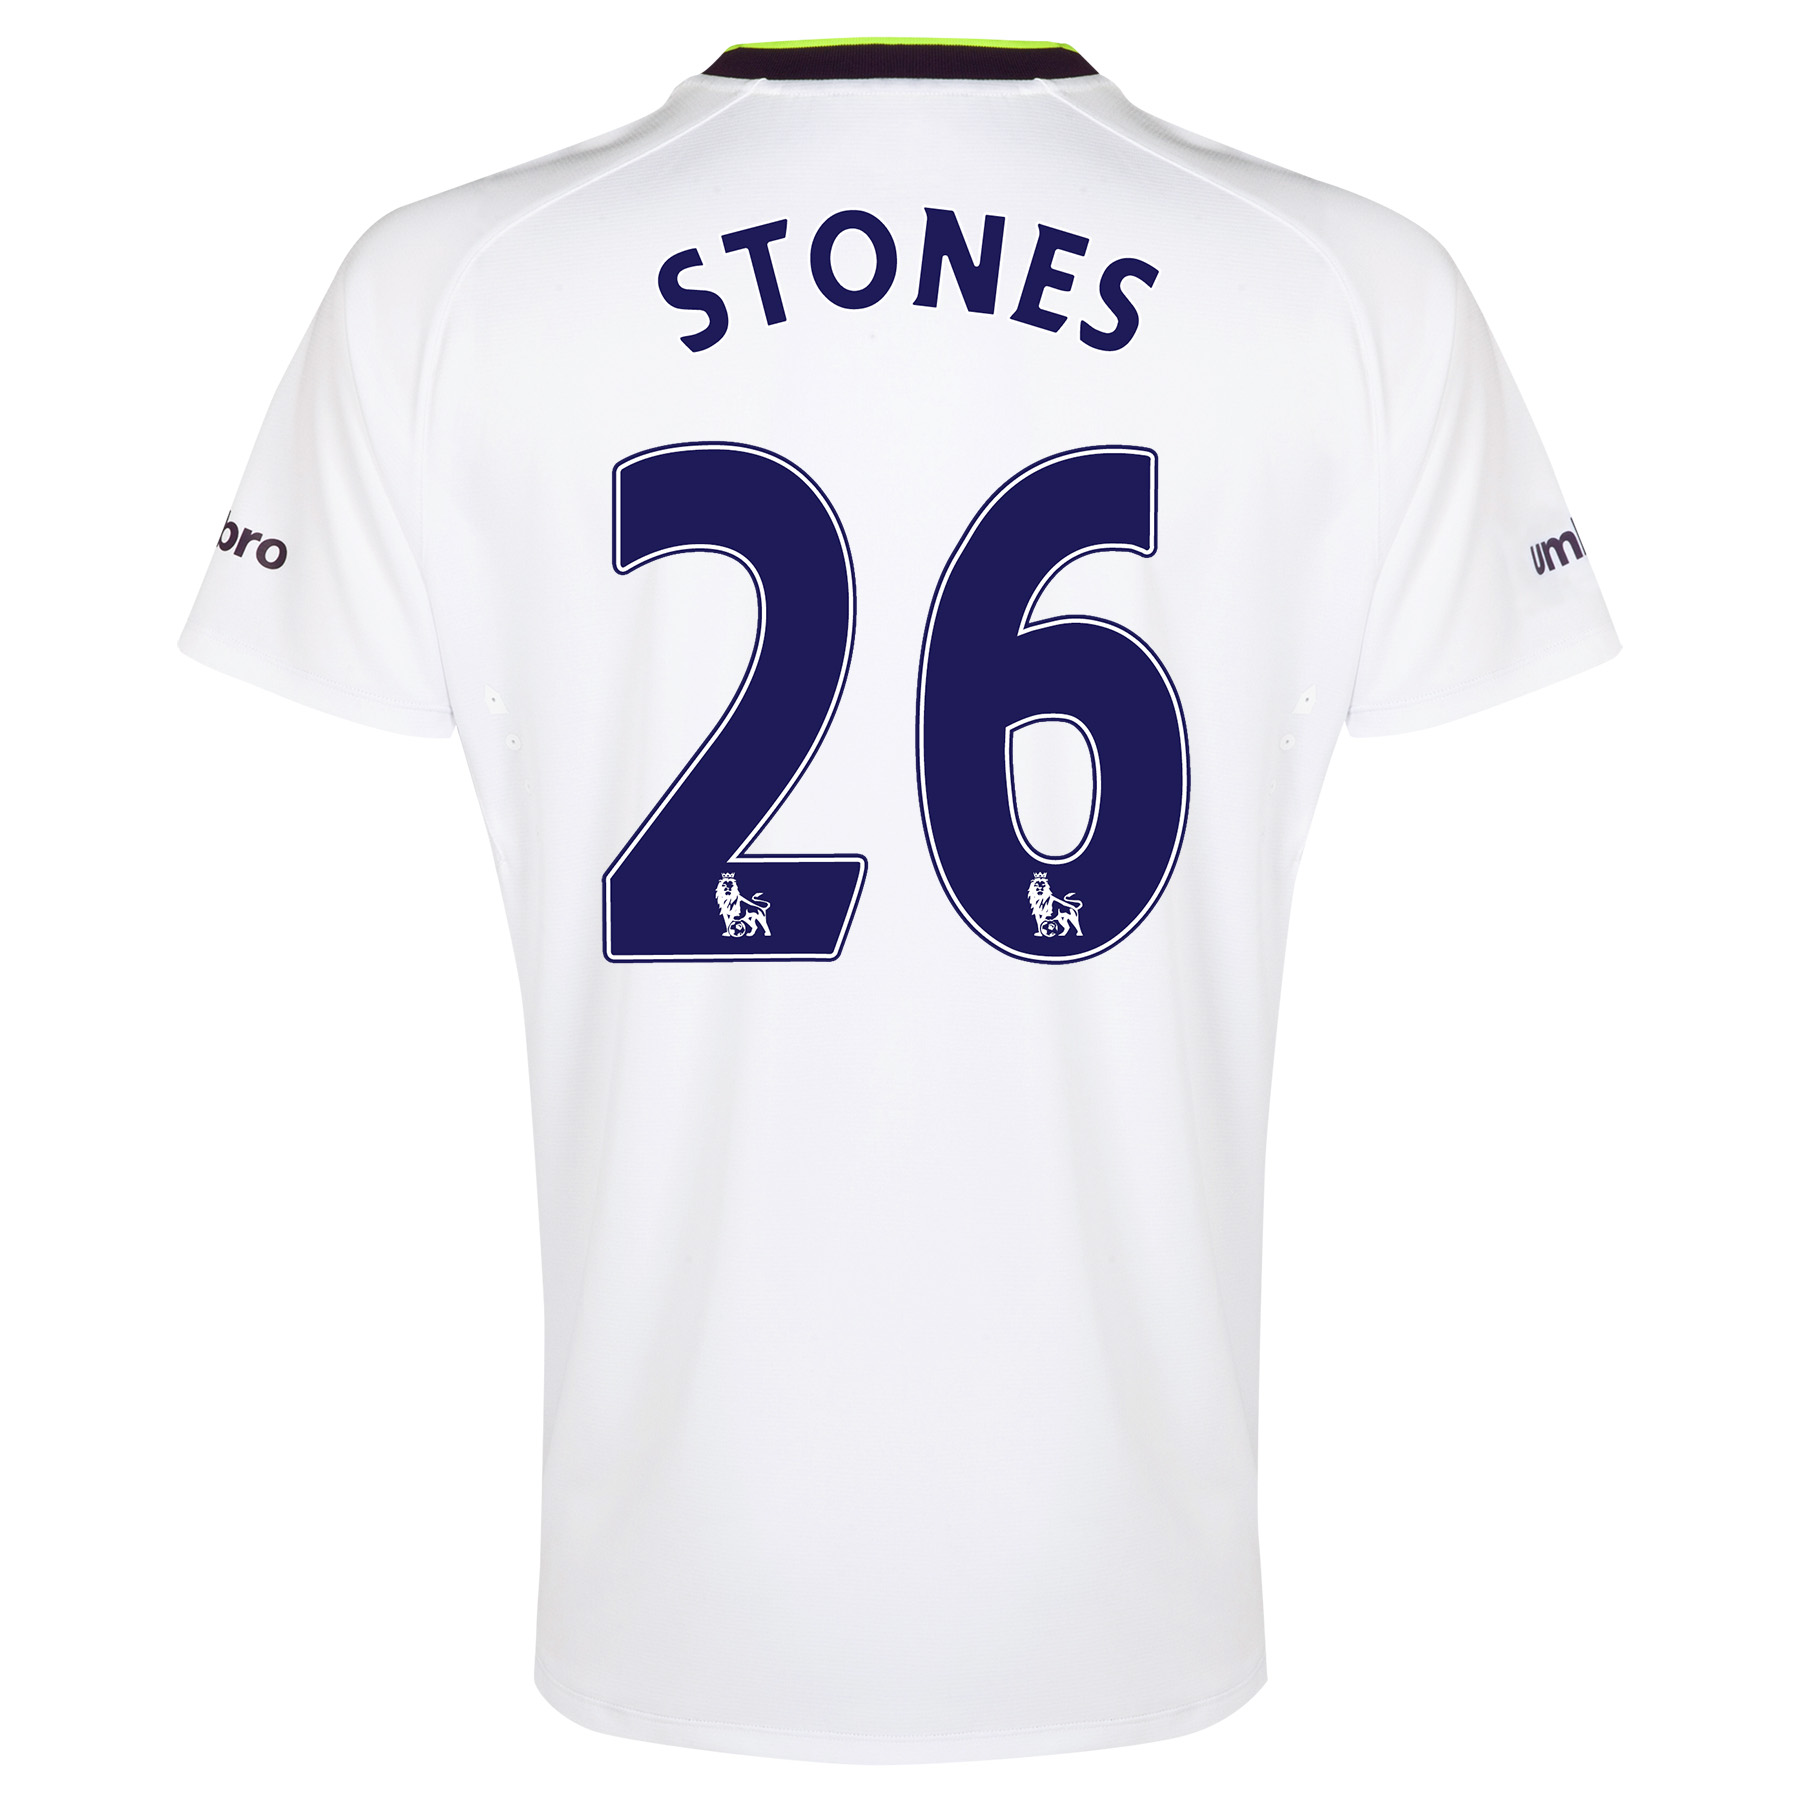 Everton SS 3rd Shirt  2014/15 with Stones 26 printing